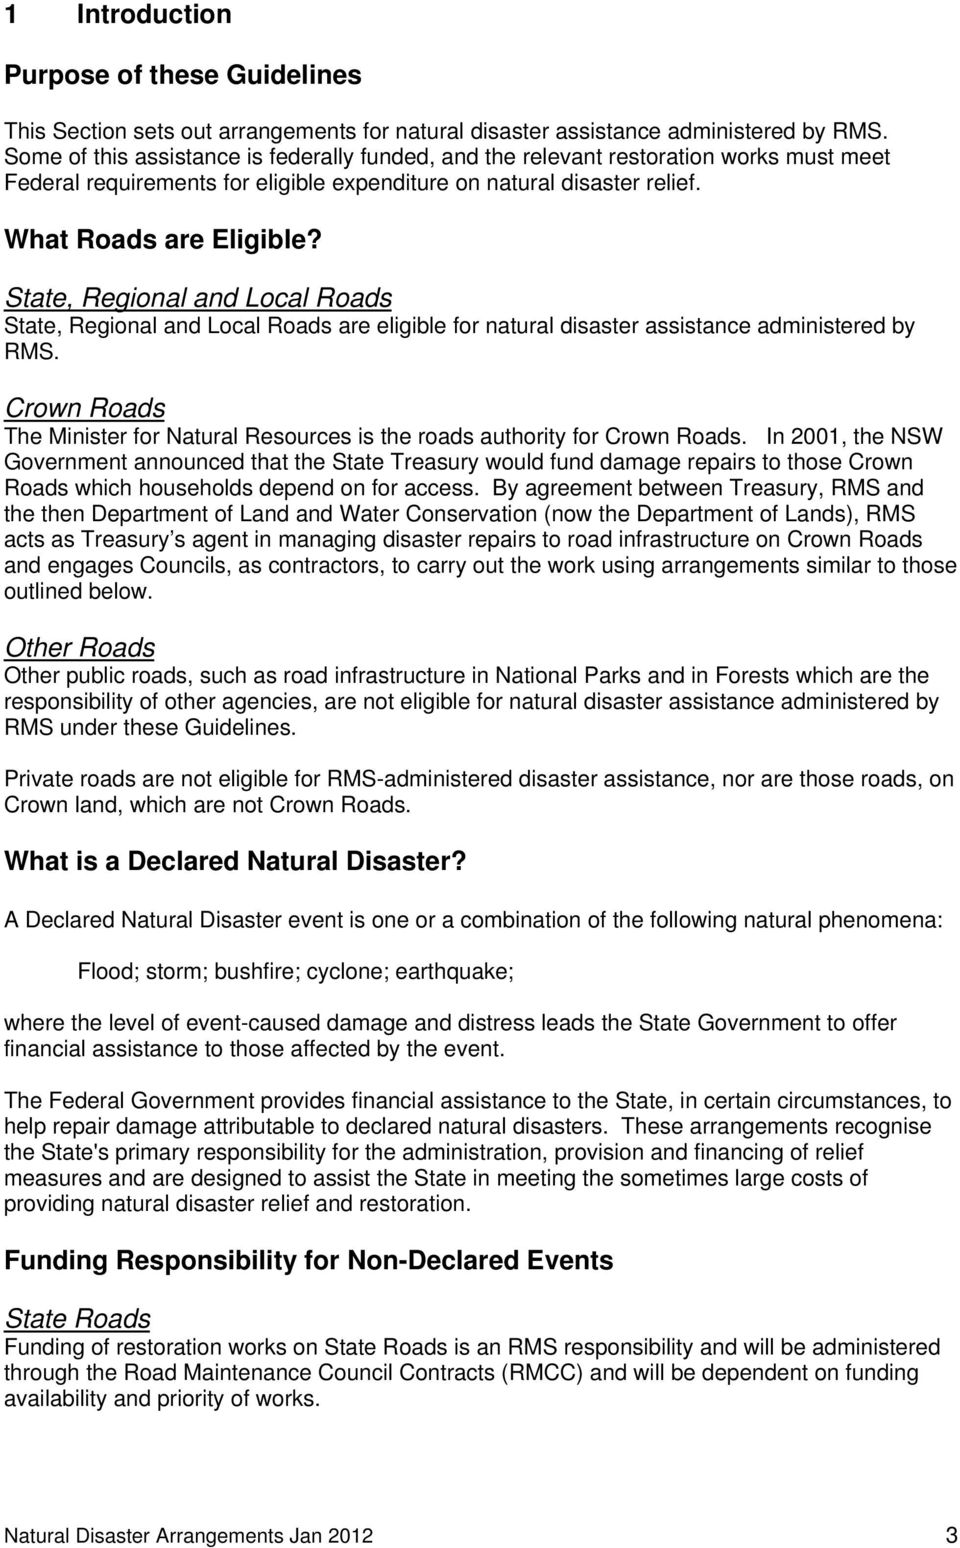 State, Regional and Local Roads State, Regional and Local Roads are eligible for natural disaster assistance administered by RMS.